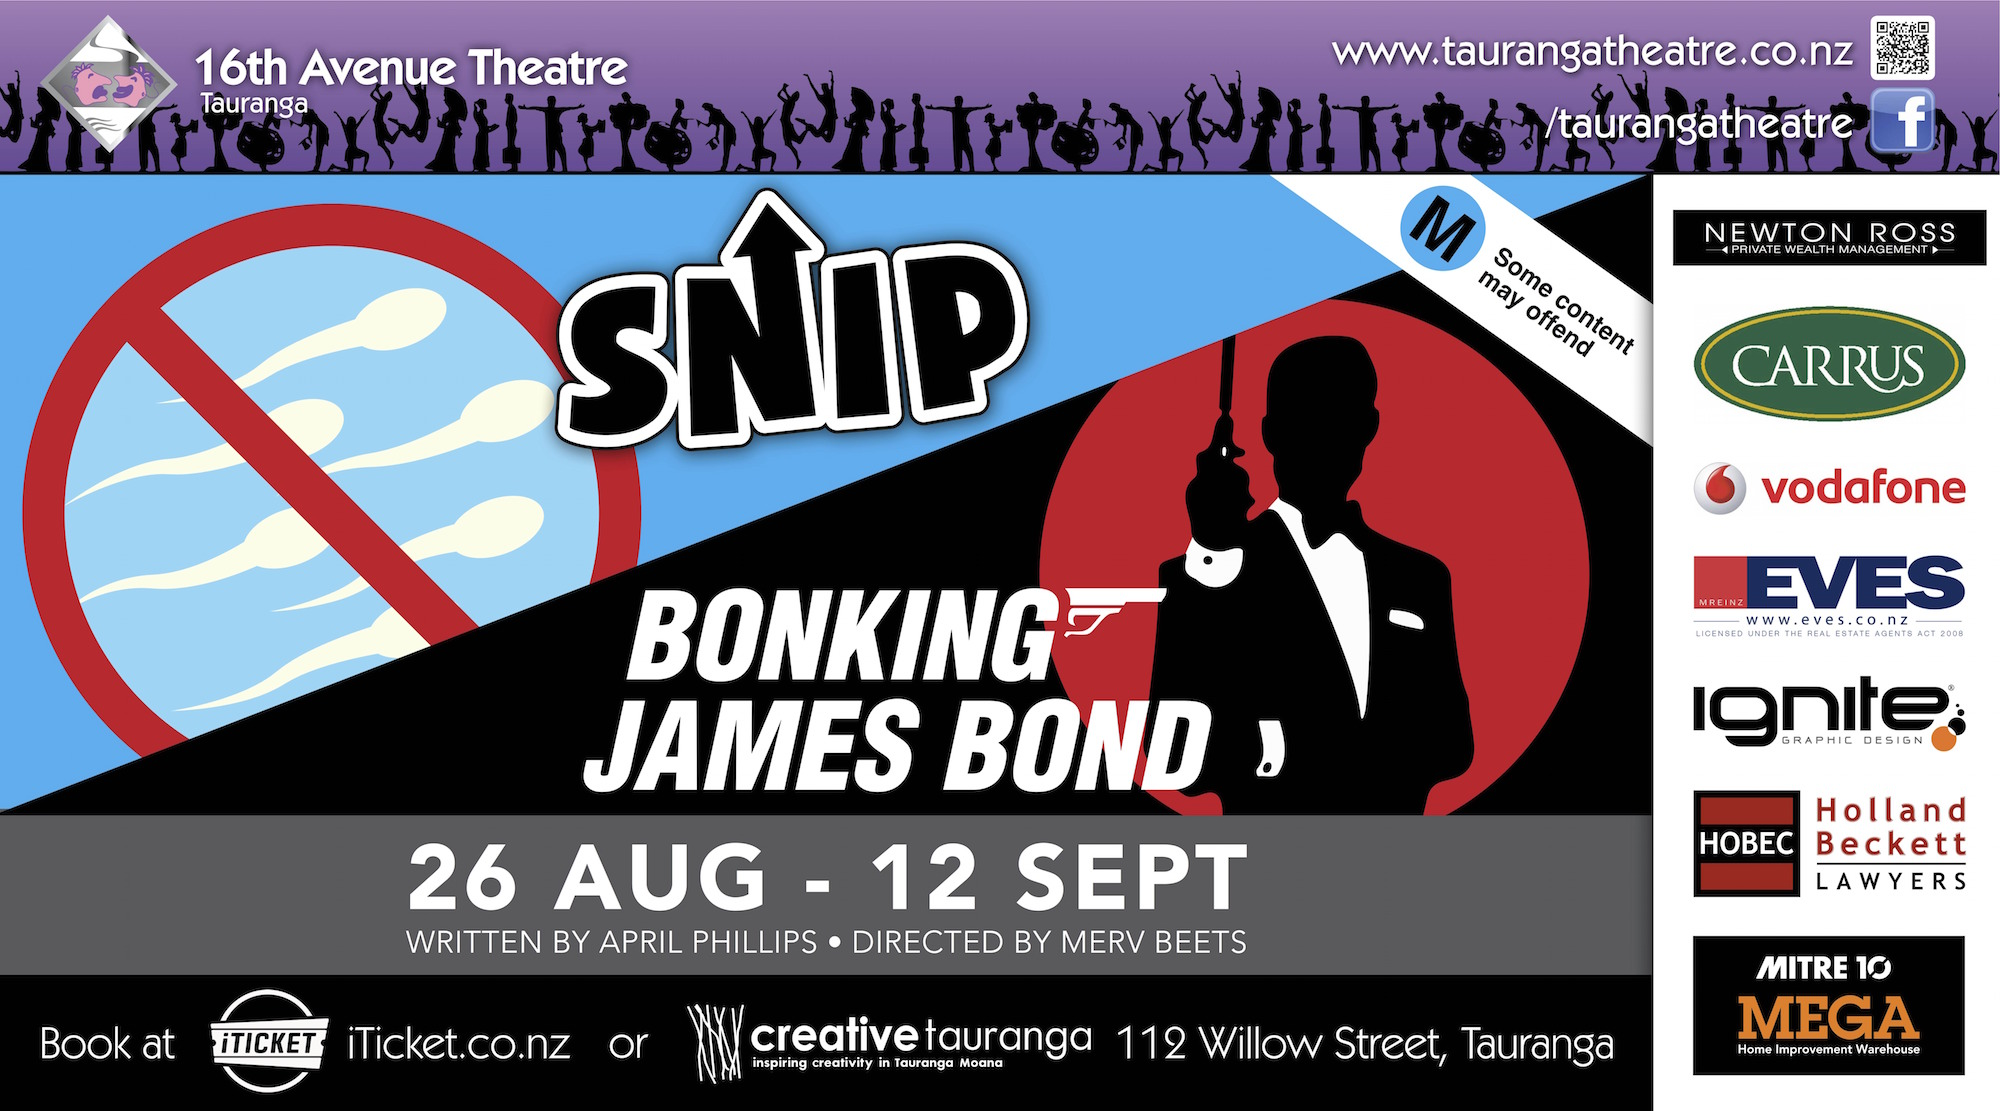 Snip & Bonking James Bond